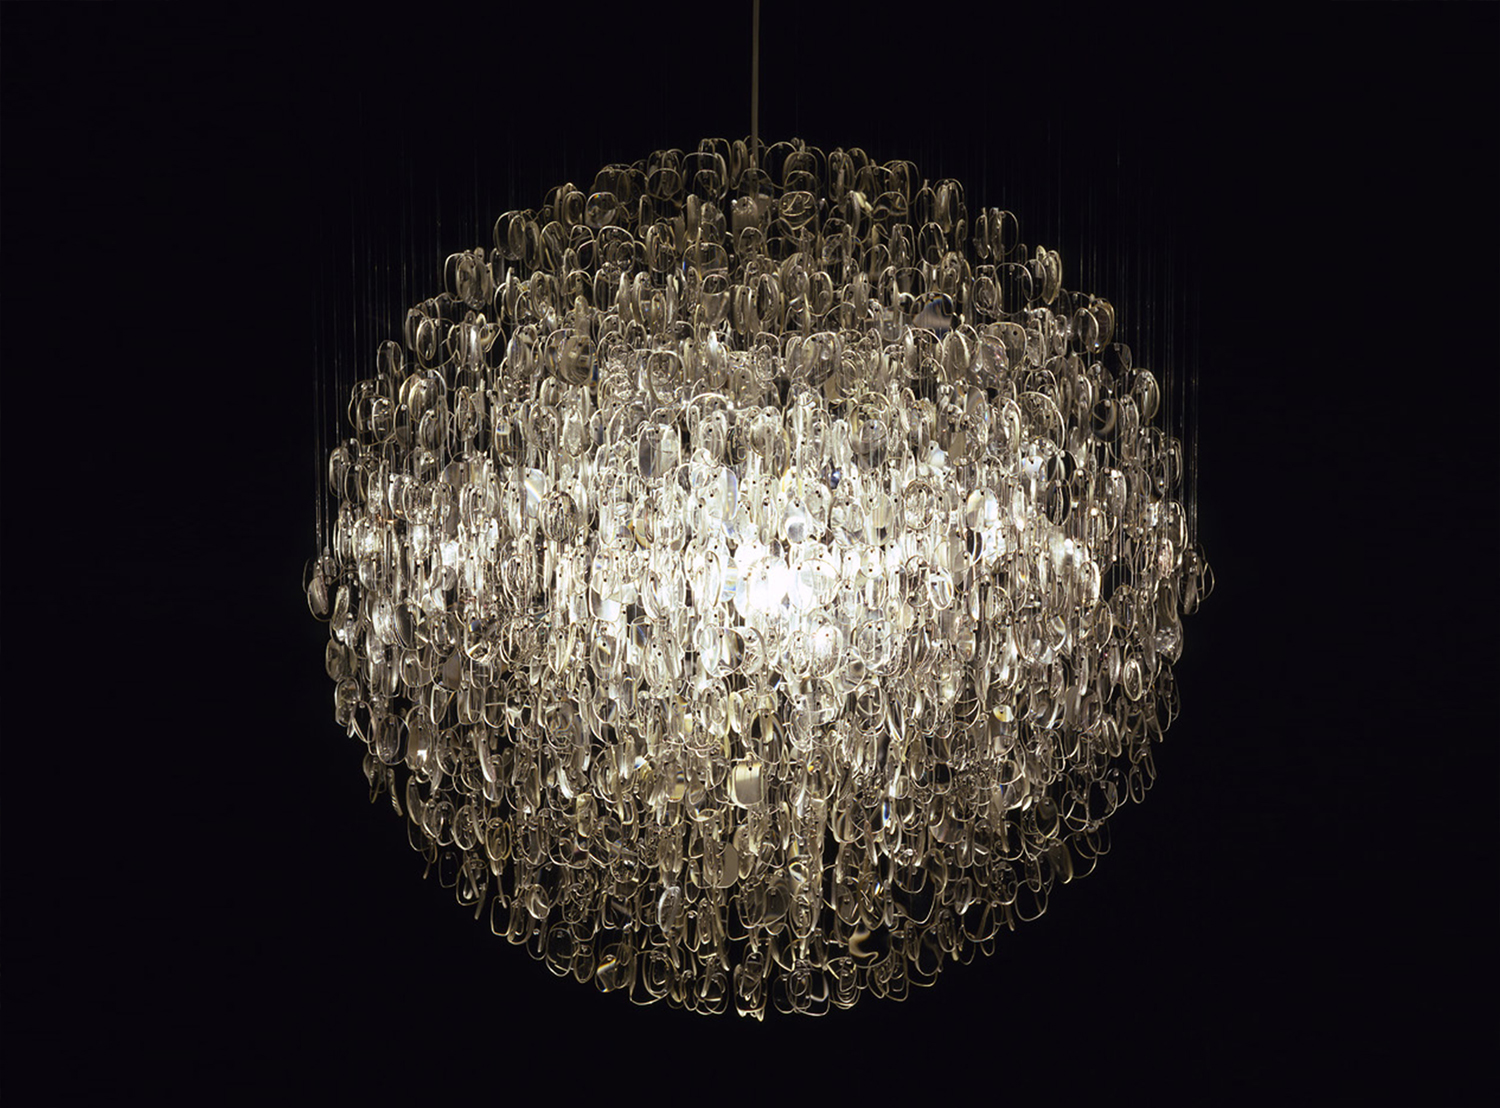 Hilden & Diaz\'s Forms in Nature Chandelier Transforms Rooms into ...